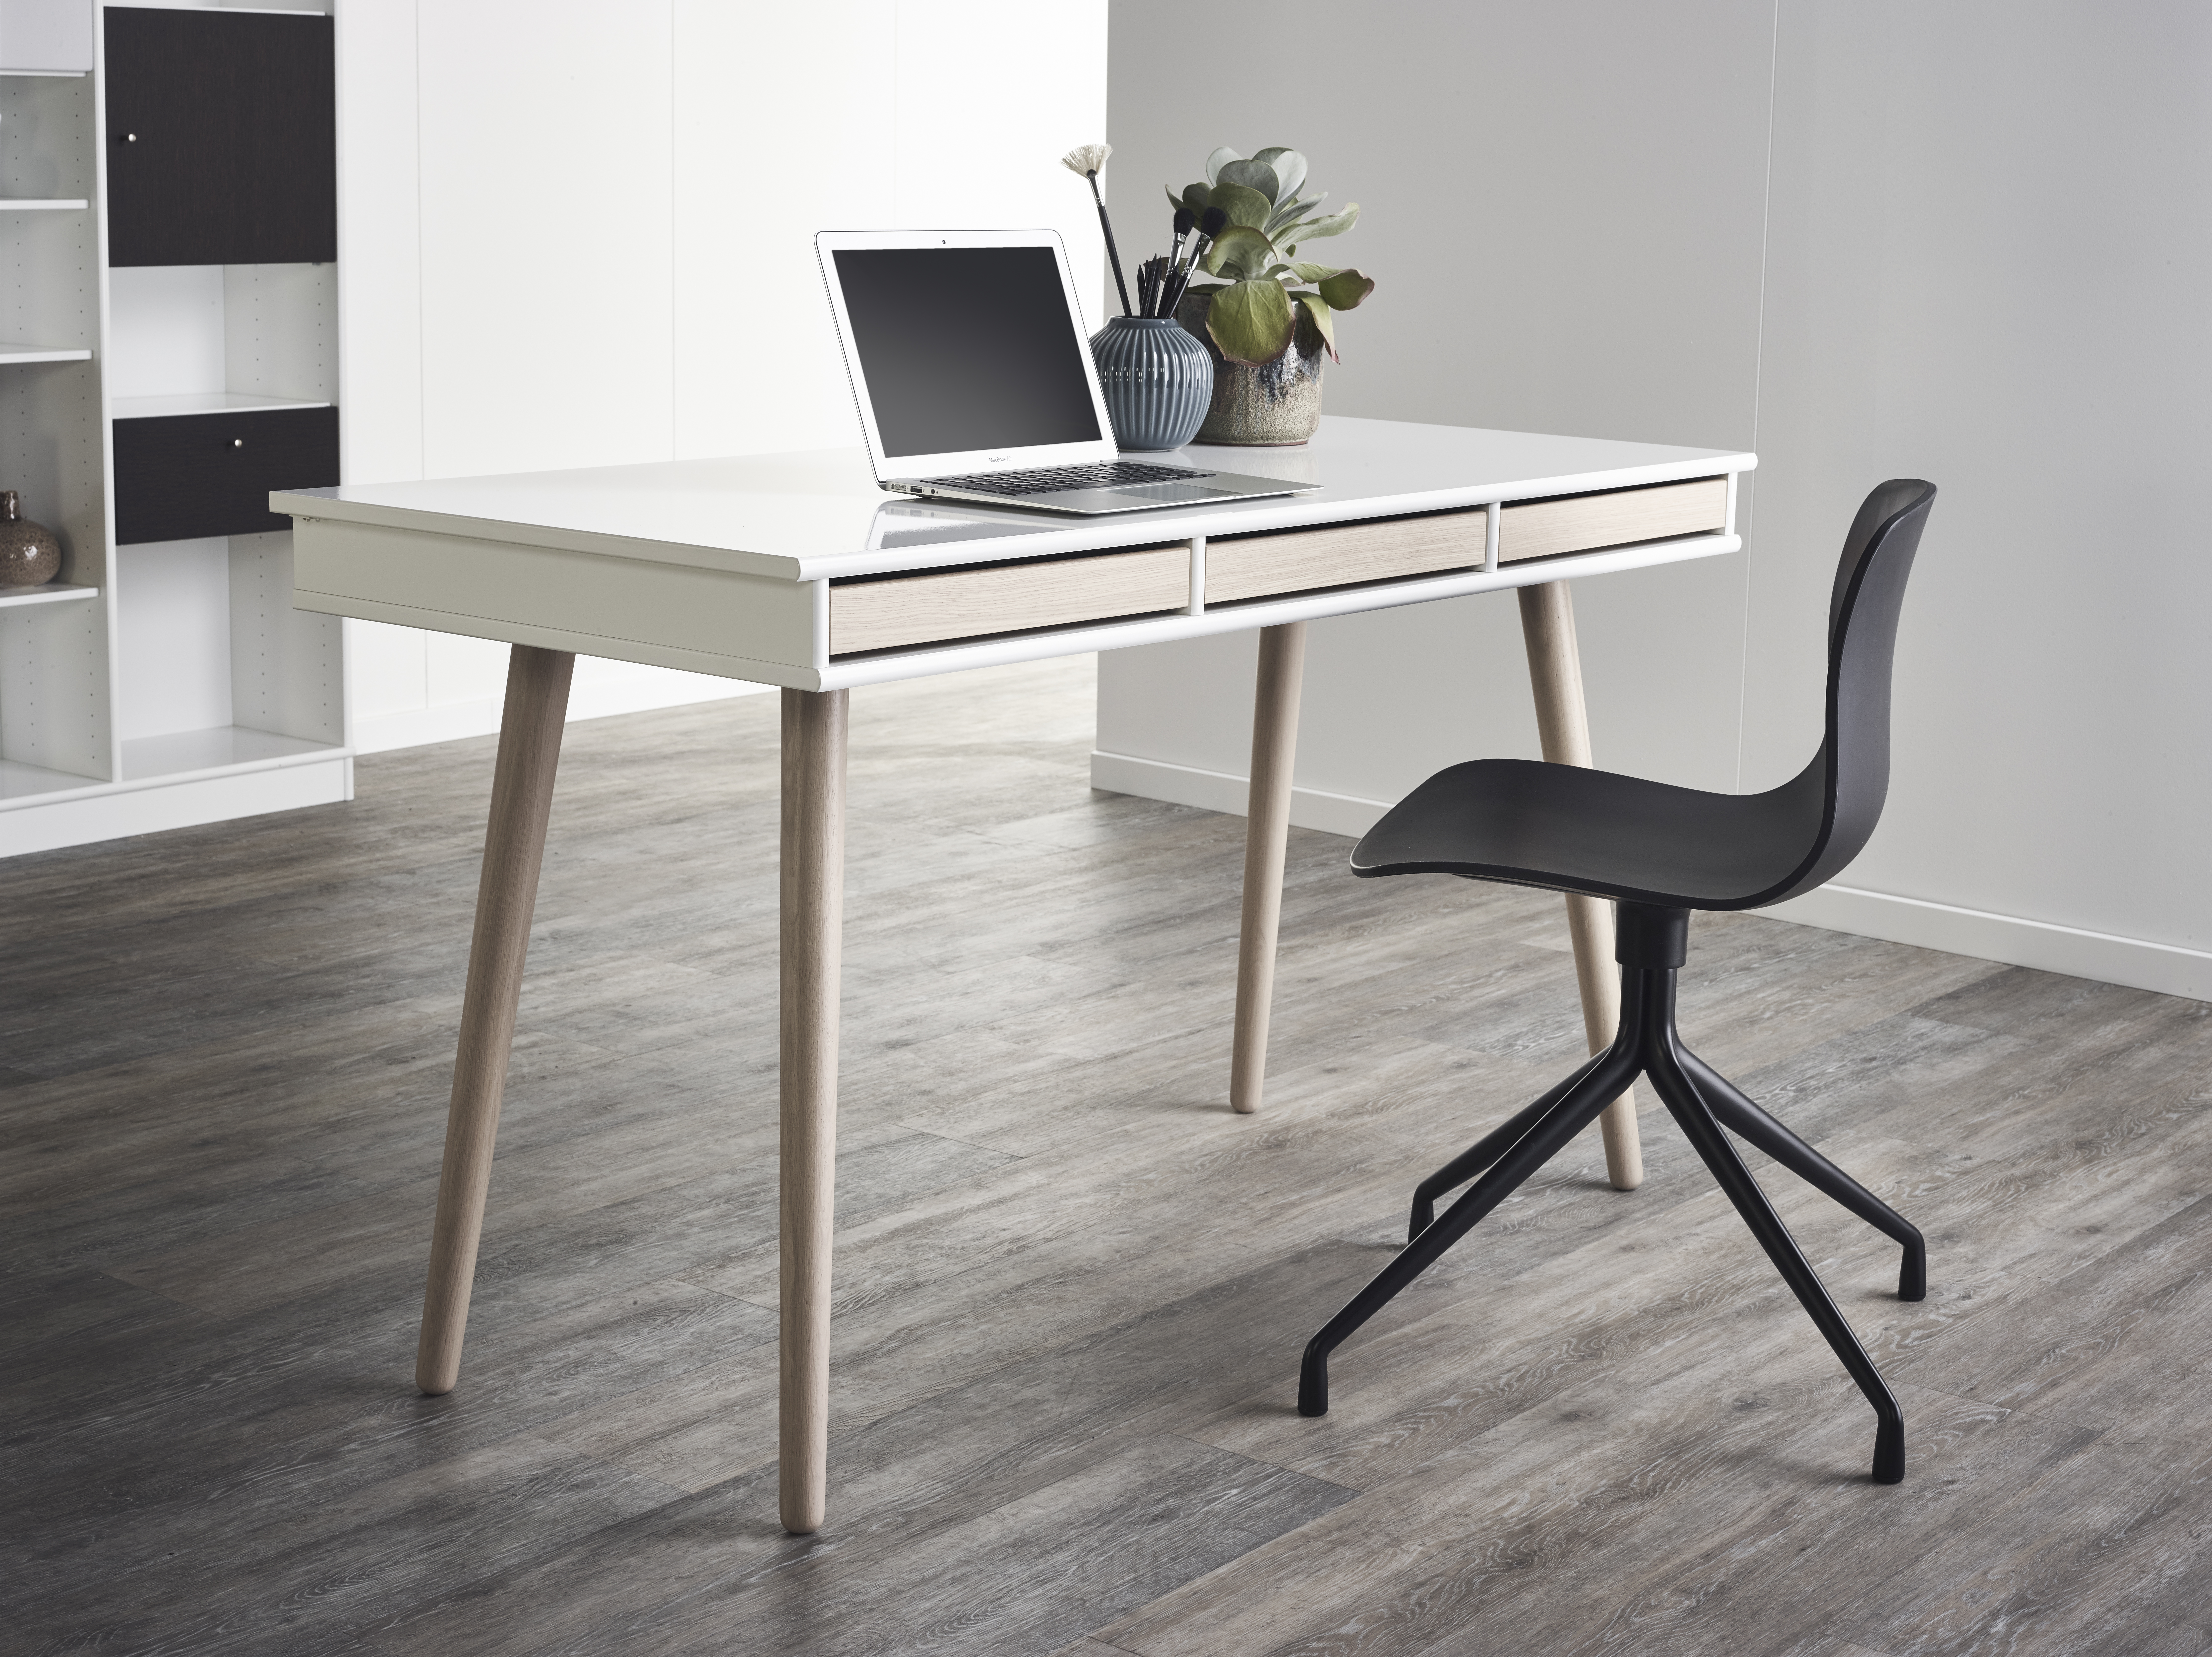 MISTRAL desk with wooden legs.